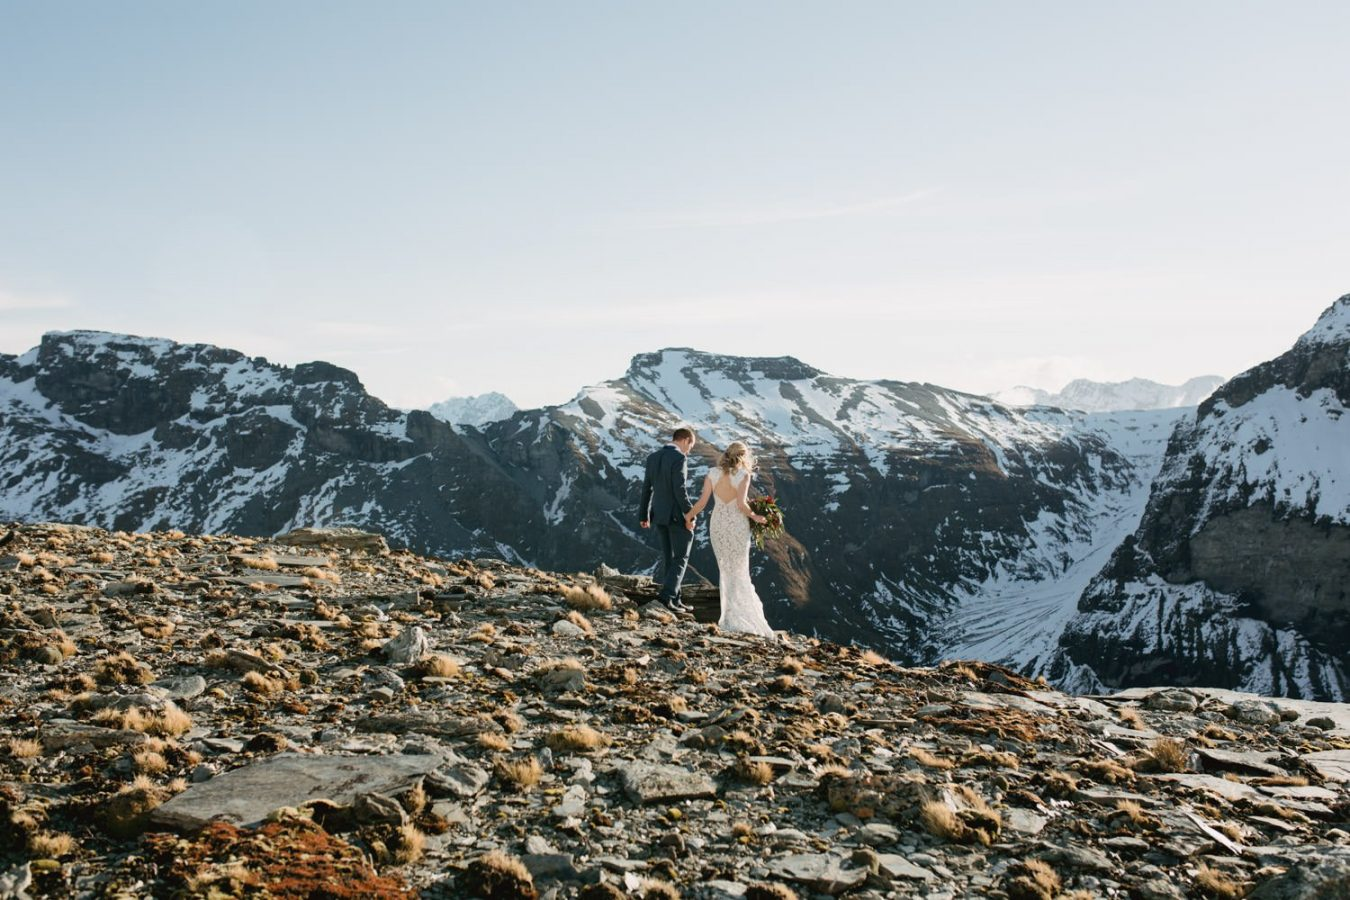 glenorchy_helicopter_elopement_dawn_thomson-39_WEB-1350x900.jpg